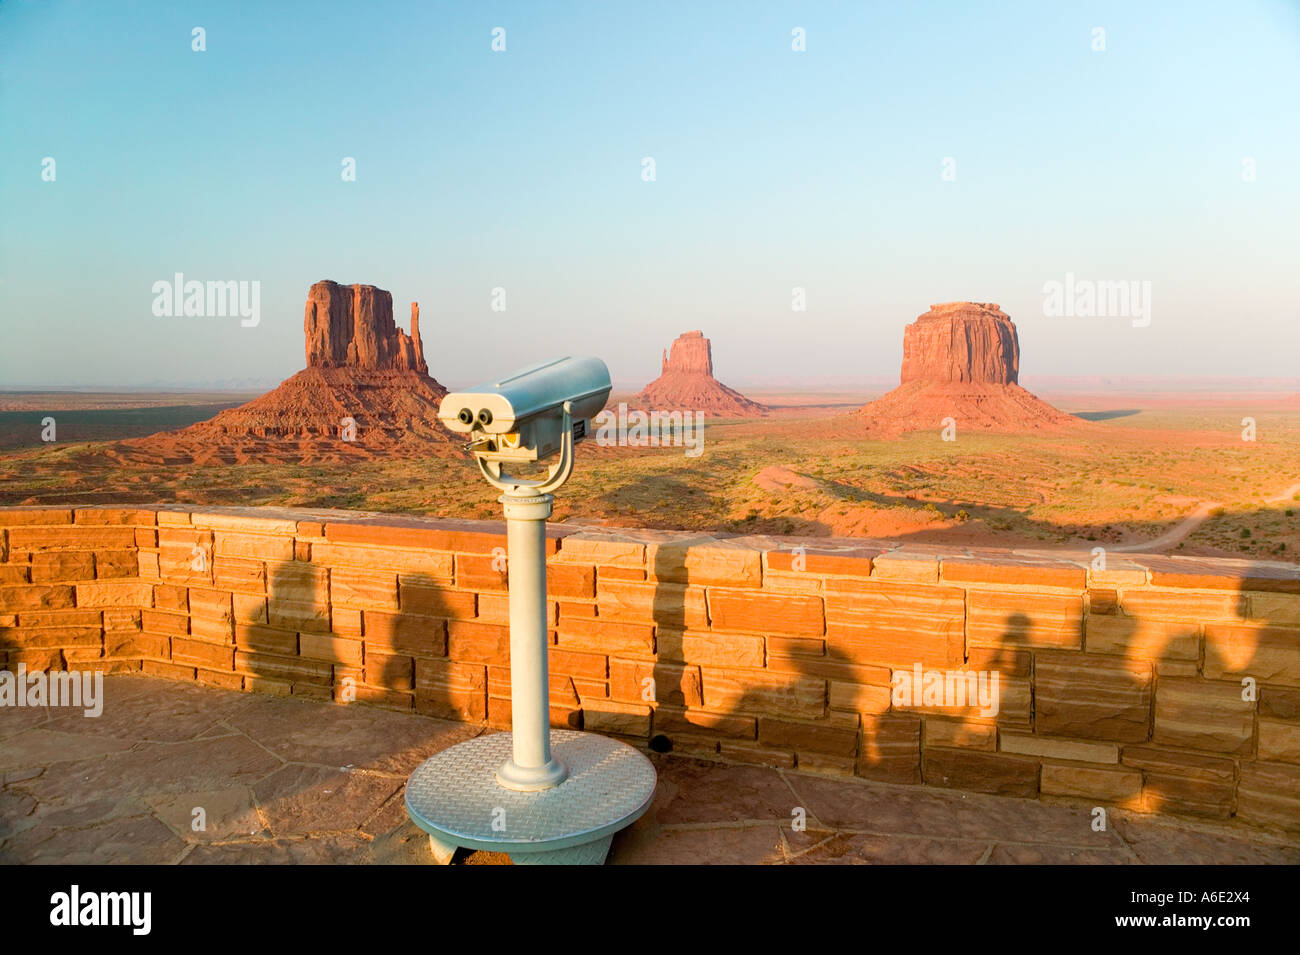 Monument Valley Visitors Center Monument Valley Utah Stock Photo